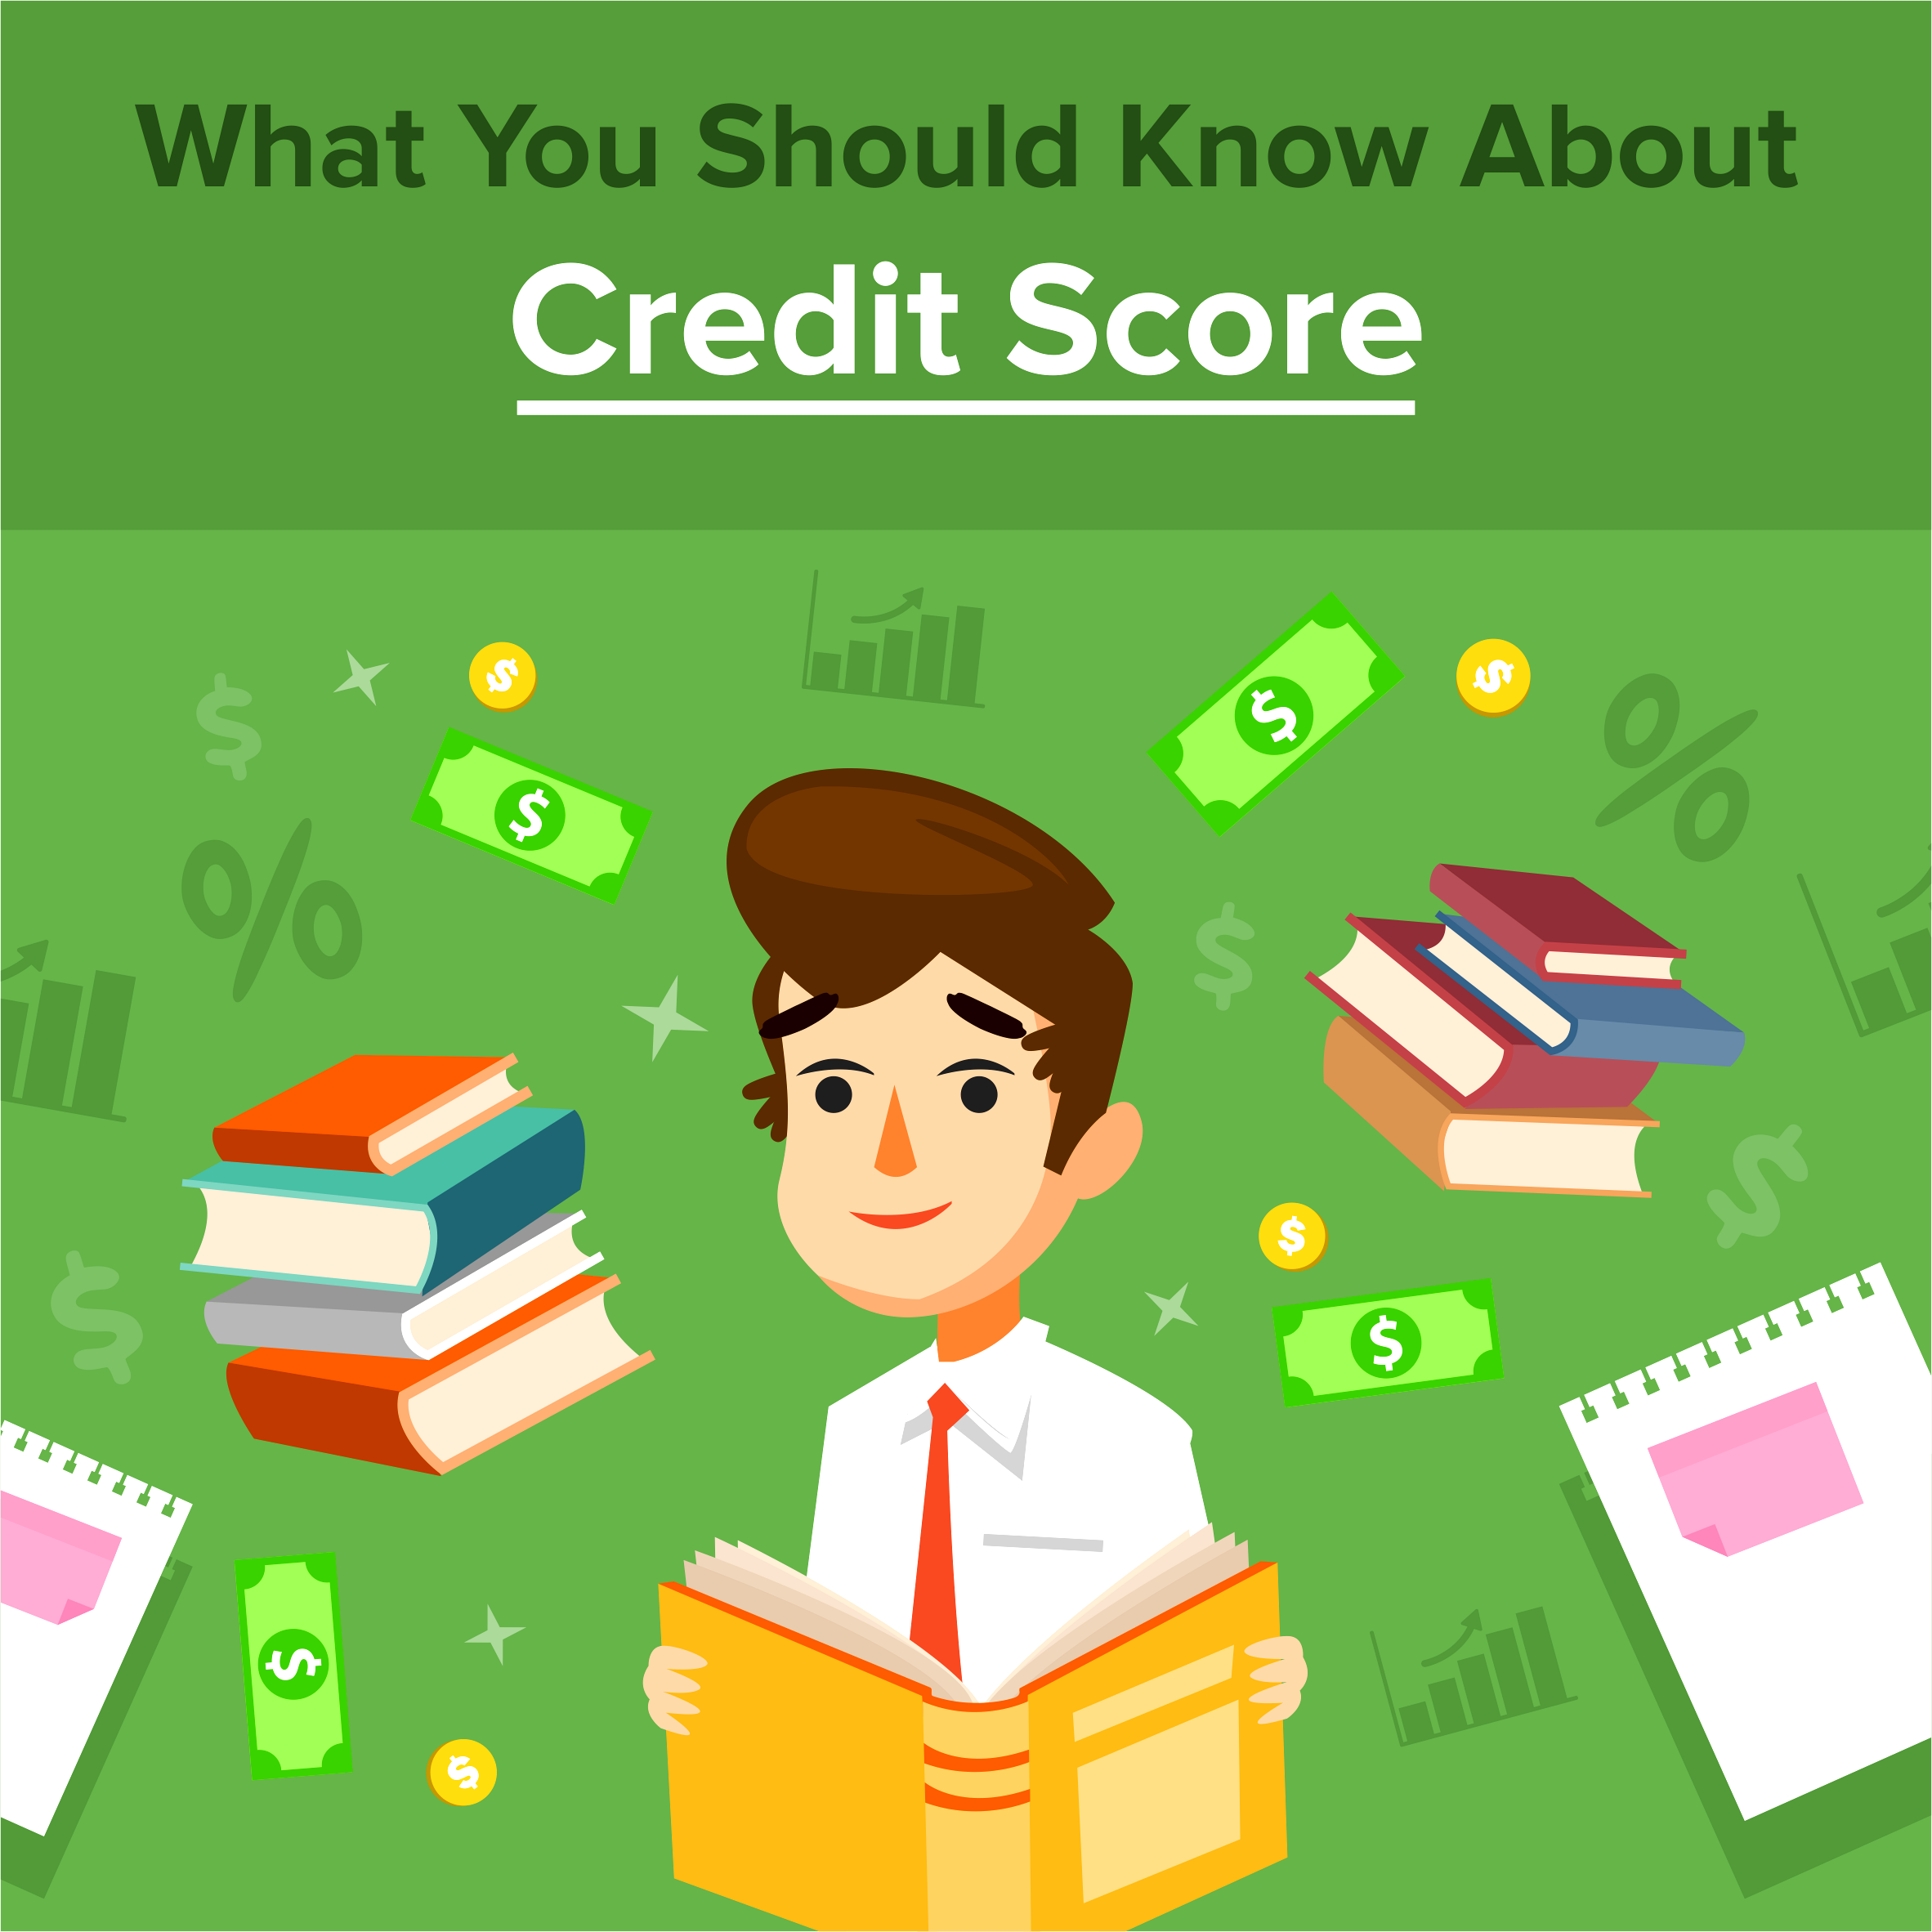 What You Should Know About Credit Score